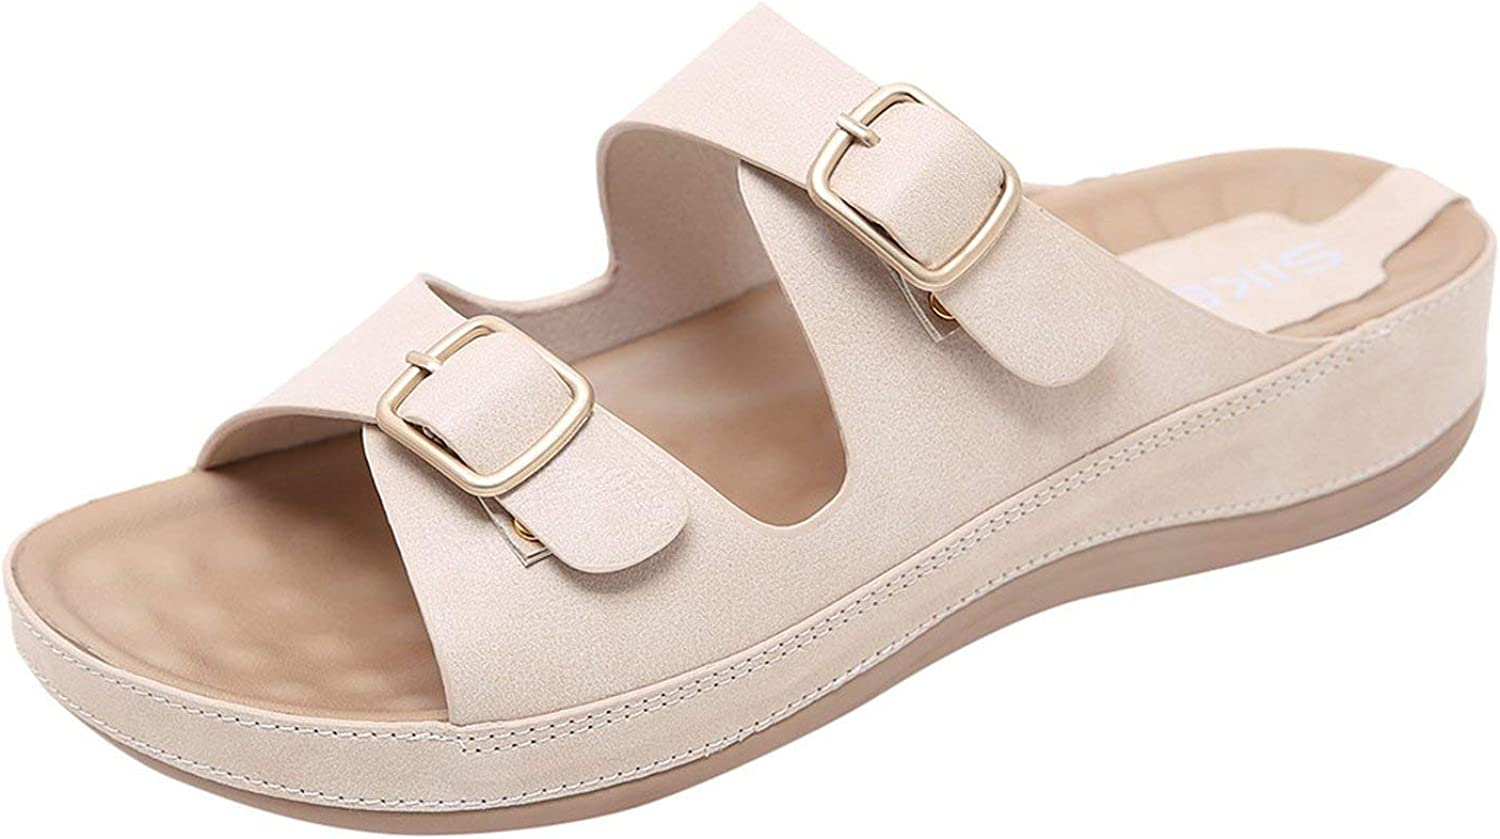 Slippers Buckle Real Leather Slides shoes Solid Thick Sole Heels Beach Sandals